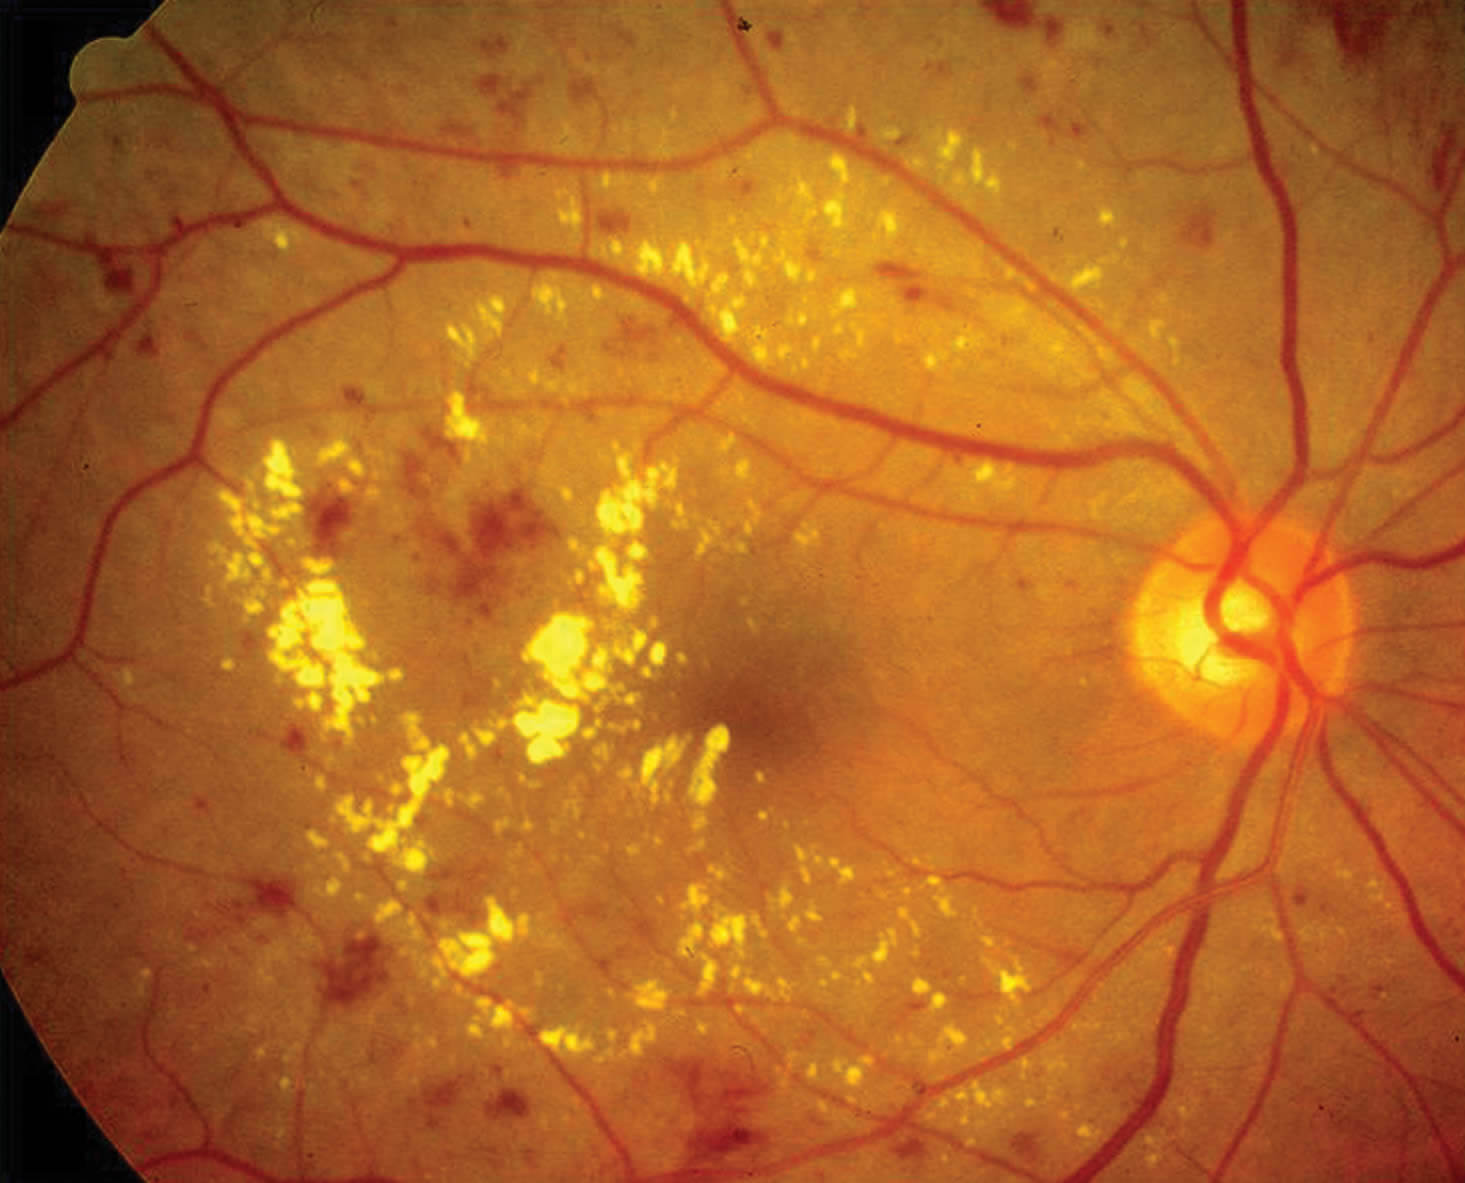 Diabetic Macular Edema: Causes, Symptoms, Treatment & Prevention